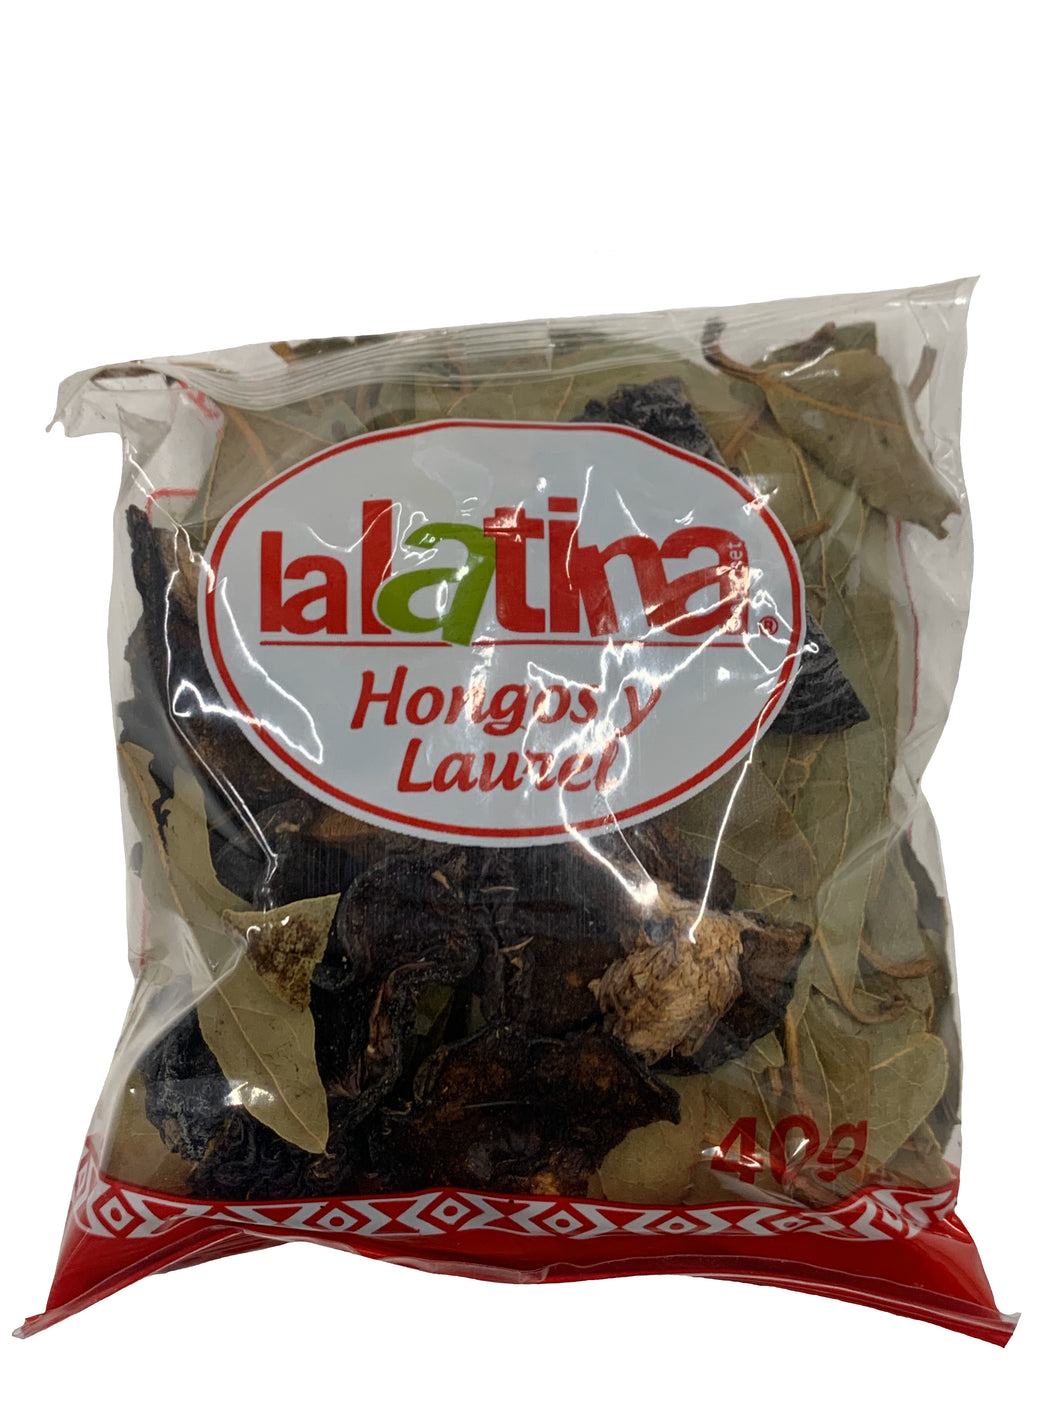 La Latina Mushrooms & Bay Leaves - Hongos y Laurel 40g